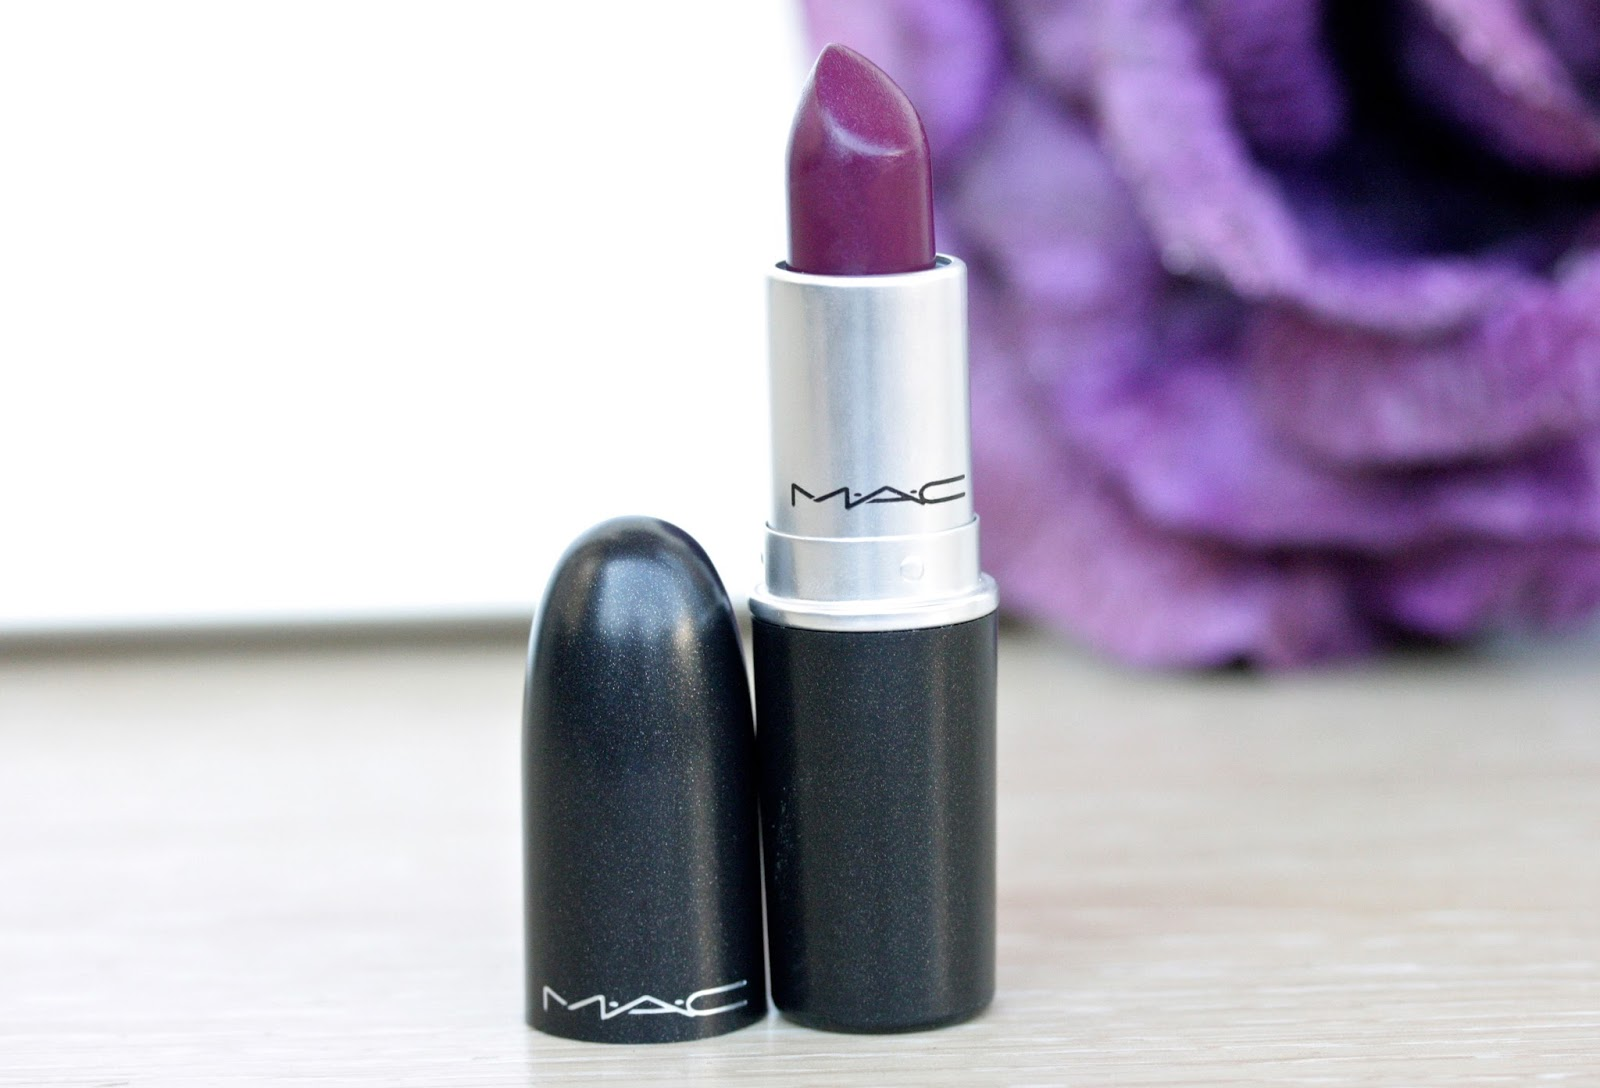 MAC Rebel Lipstick / Review and Swatches | RosyChicc